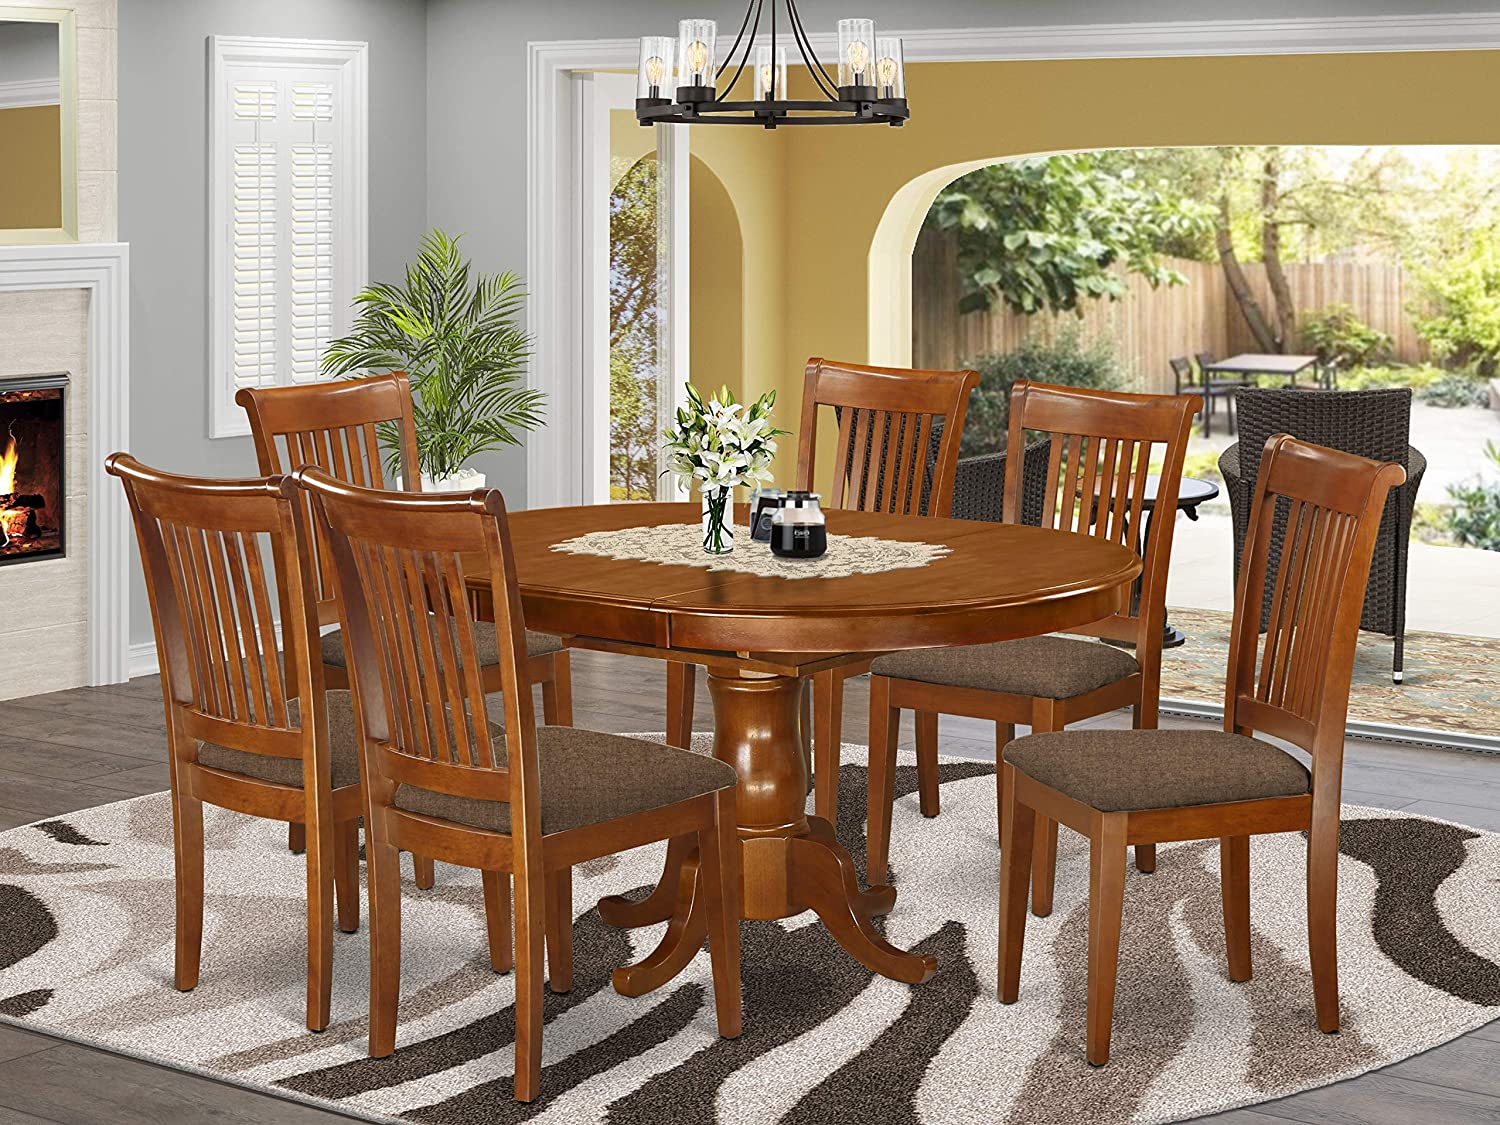 Amazon Com 7 Pc Dining Room Set Oval Dining Table With Leaf And 6 Dining Chairs Furniture Decor